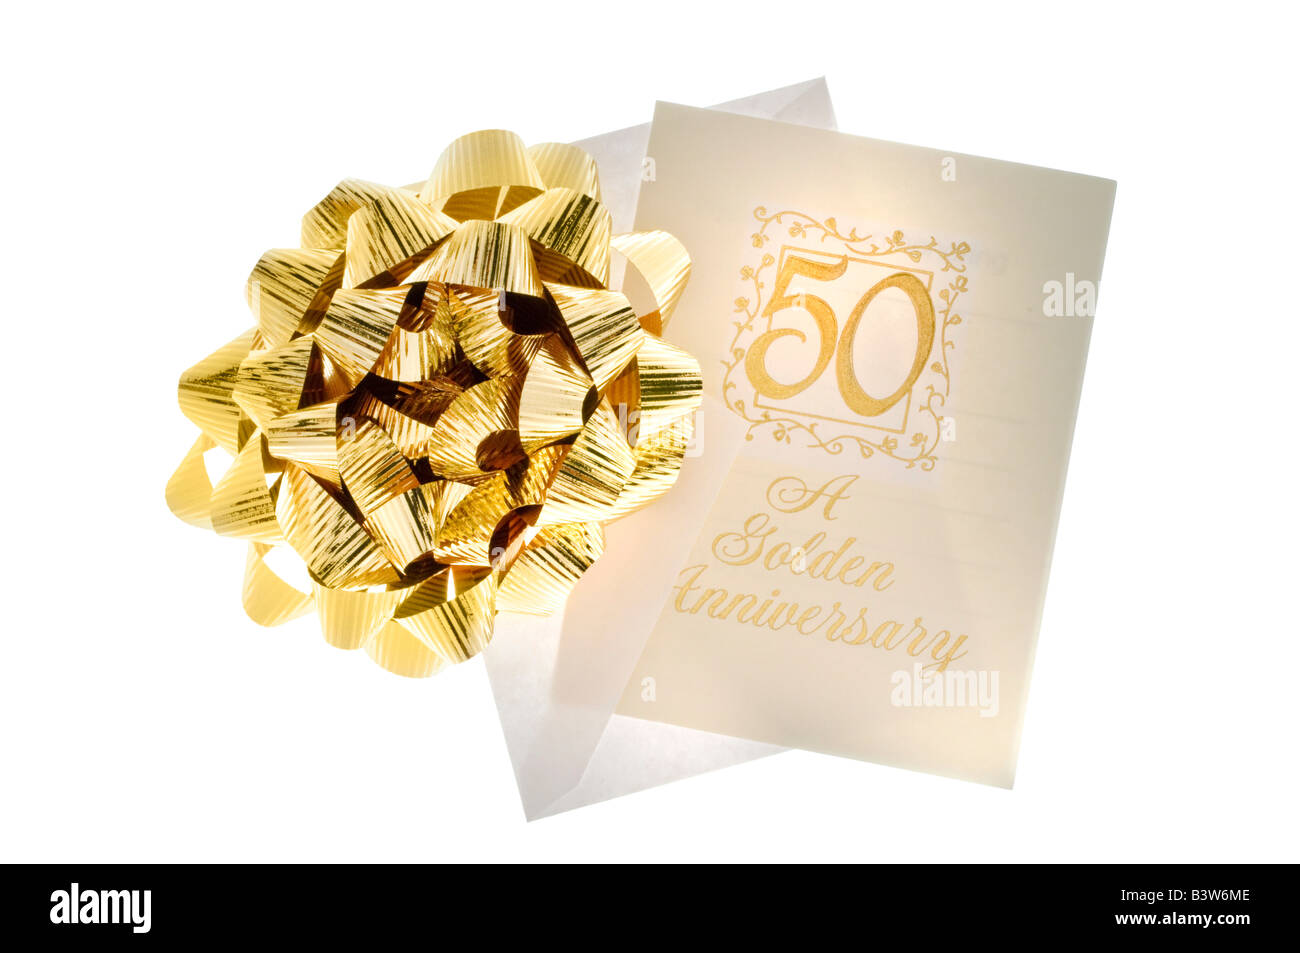 50th Anniversary card with envelope and gold bow - Stock Image